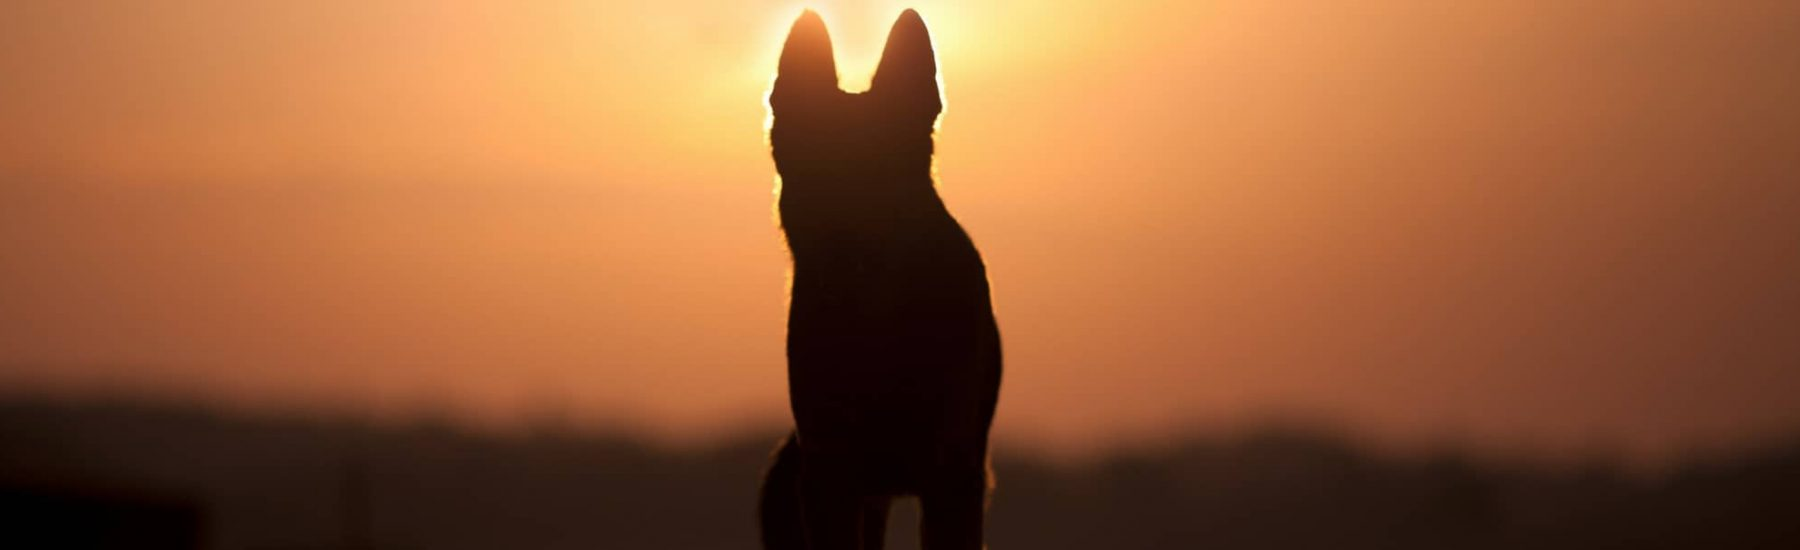 Dog during sunset